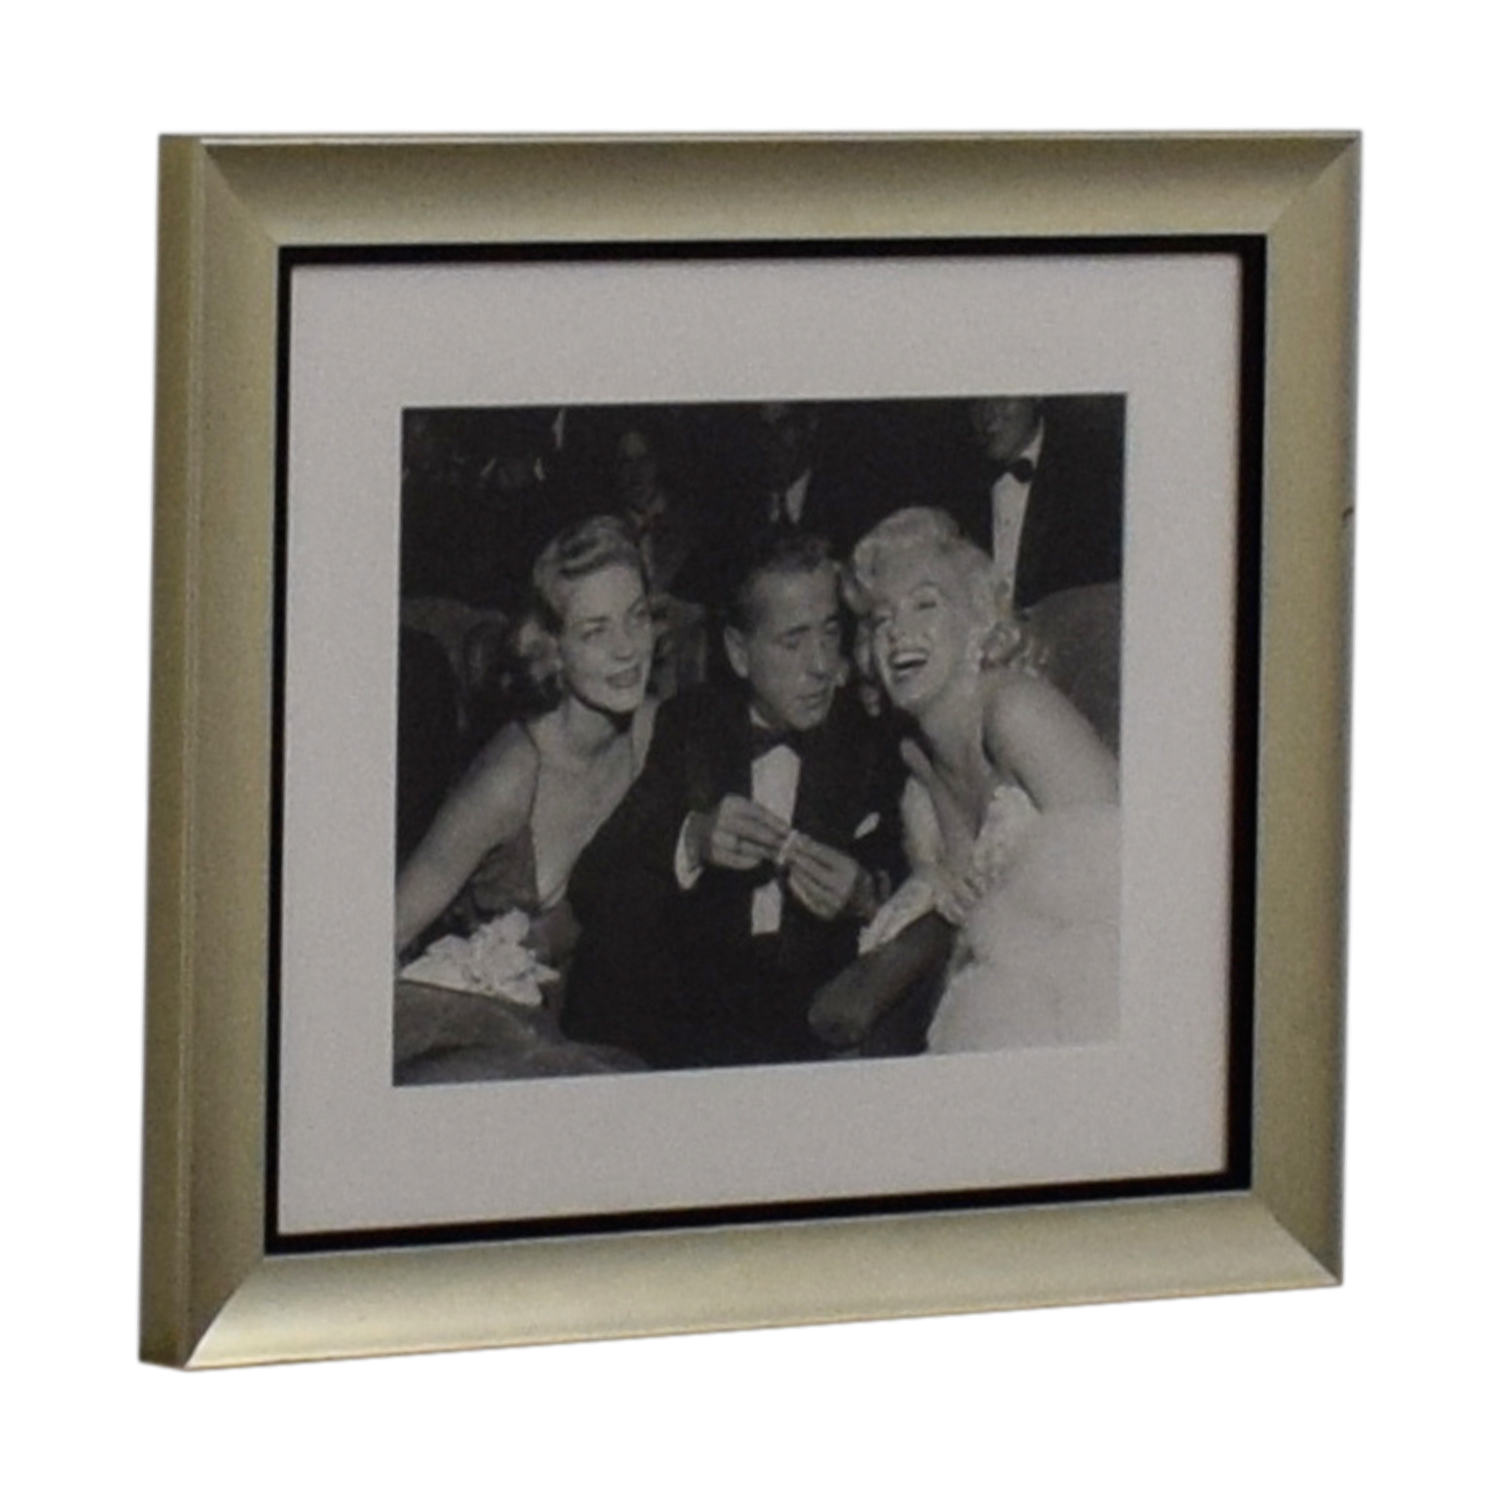 buy Ralph Lauren Marilyn Monroe, Lauren Bacall & Humphrey Bogart Framed Photograph Ralph Lauren Decor